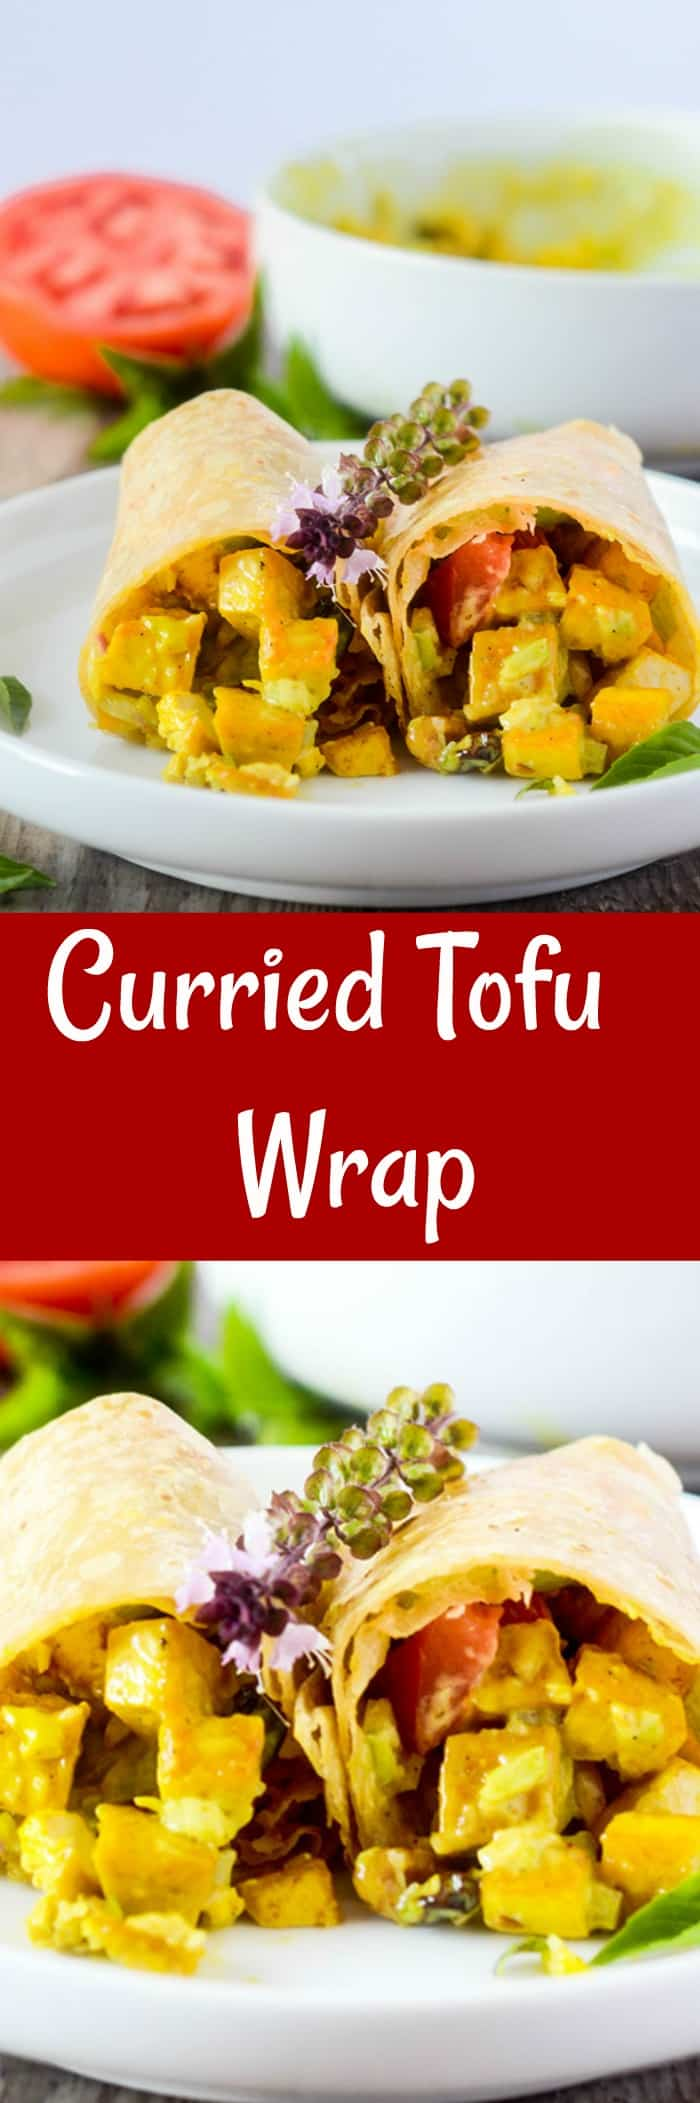 Curried Tofu Wrap